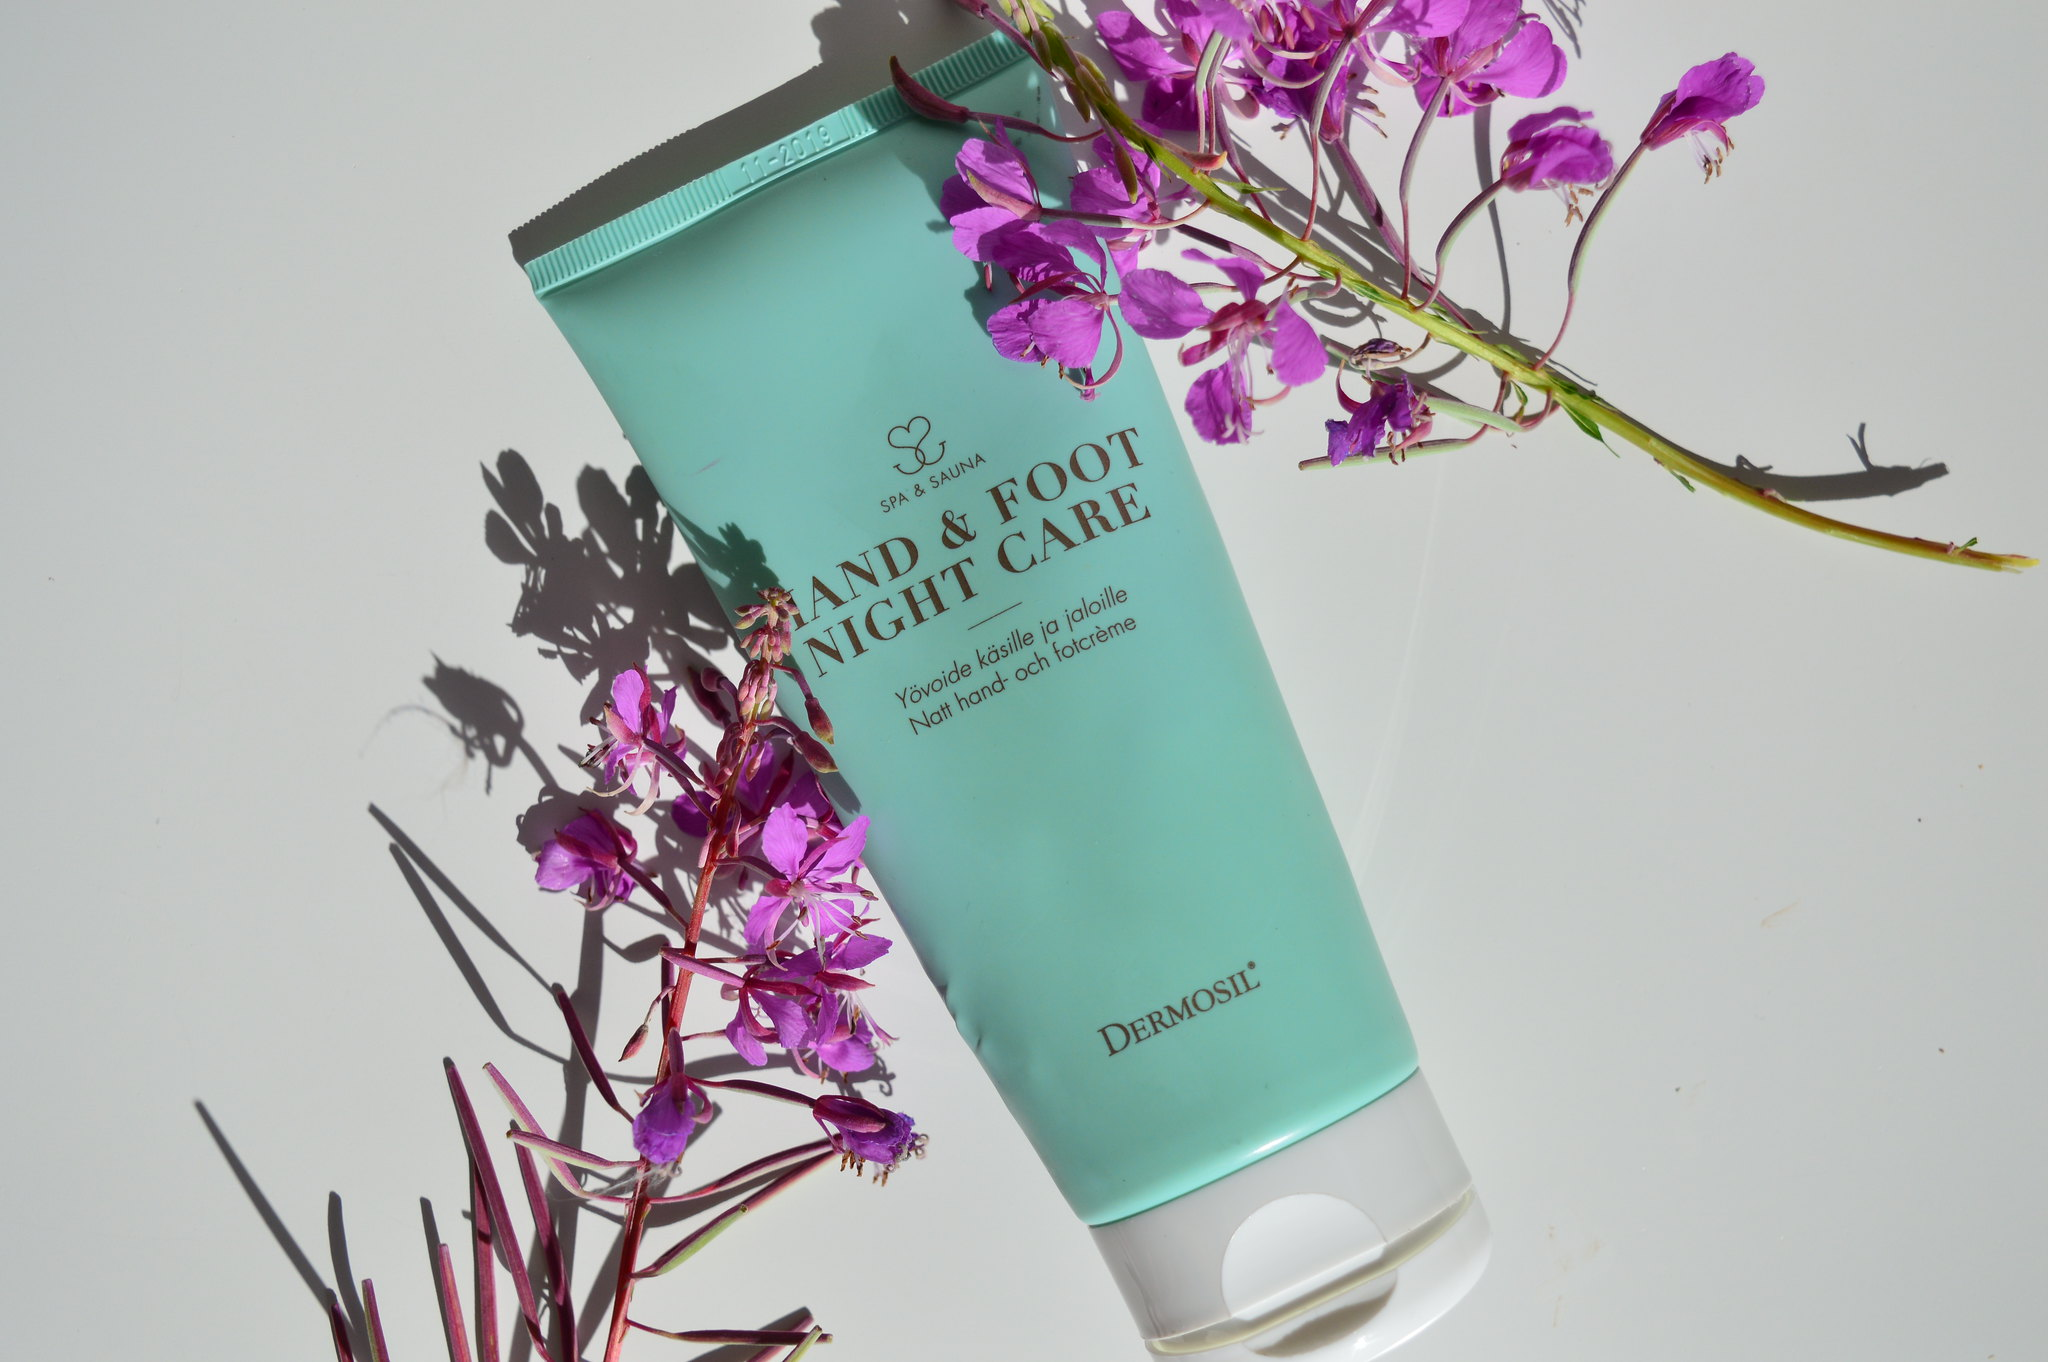 Dermosil Hand & Foot night care